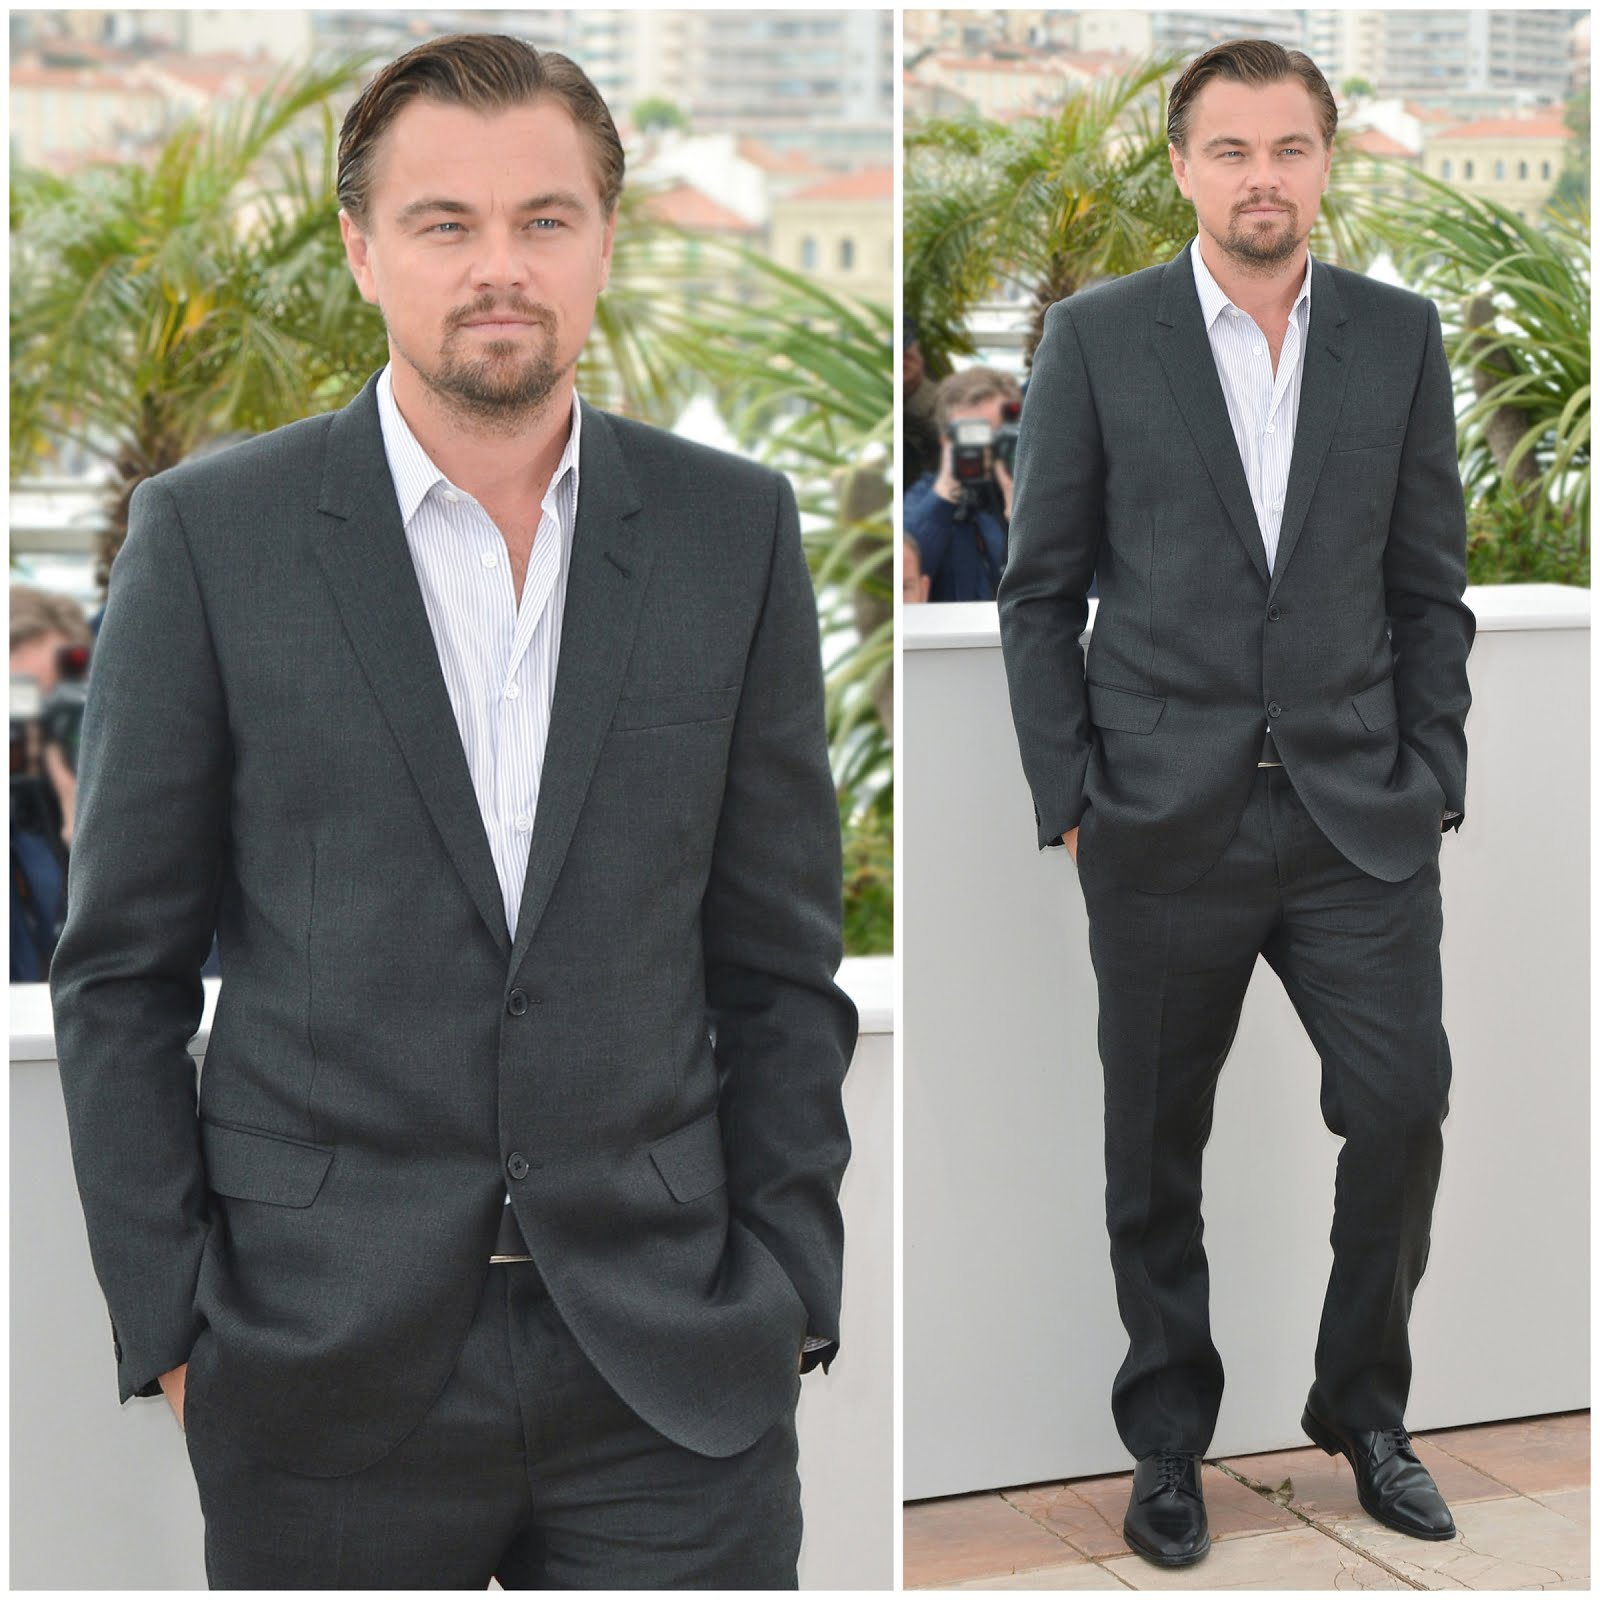 00O00 Menswear Blog: Leonardo DiCaprio in Hedi Slimane Saint Laurent - 'The Great Gatsby' photo call, 66th Cannes Film Festival